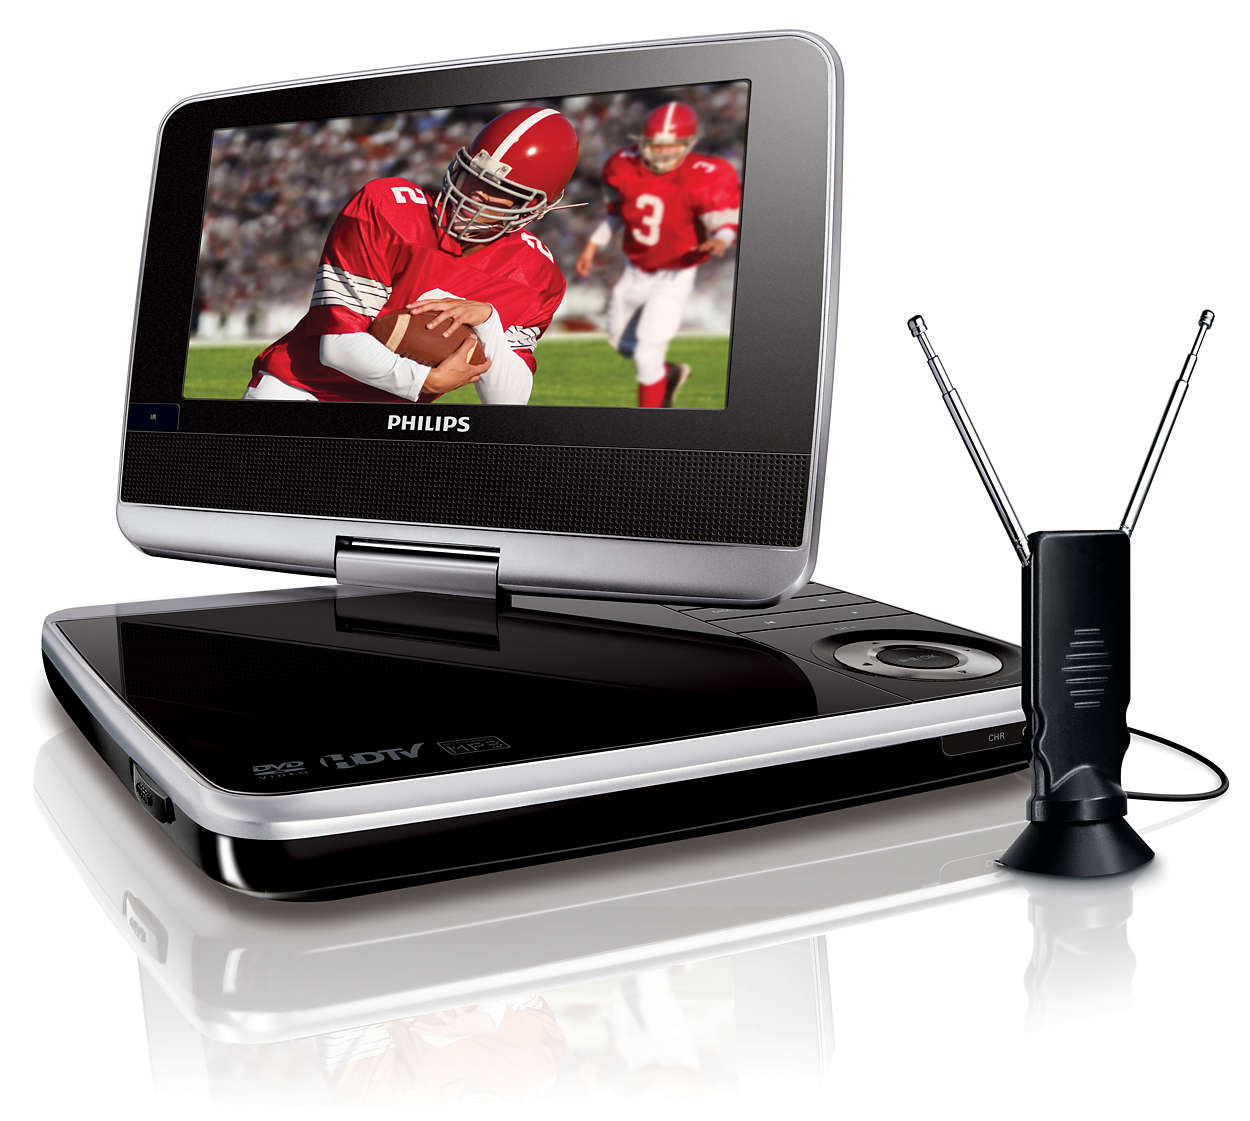 Portable Dvd Player Pet74937 Philips